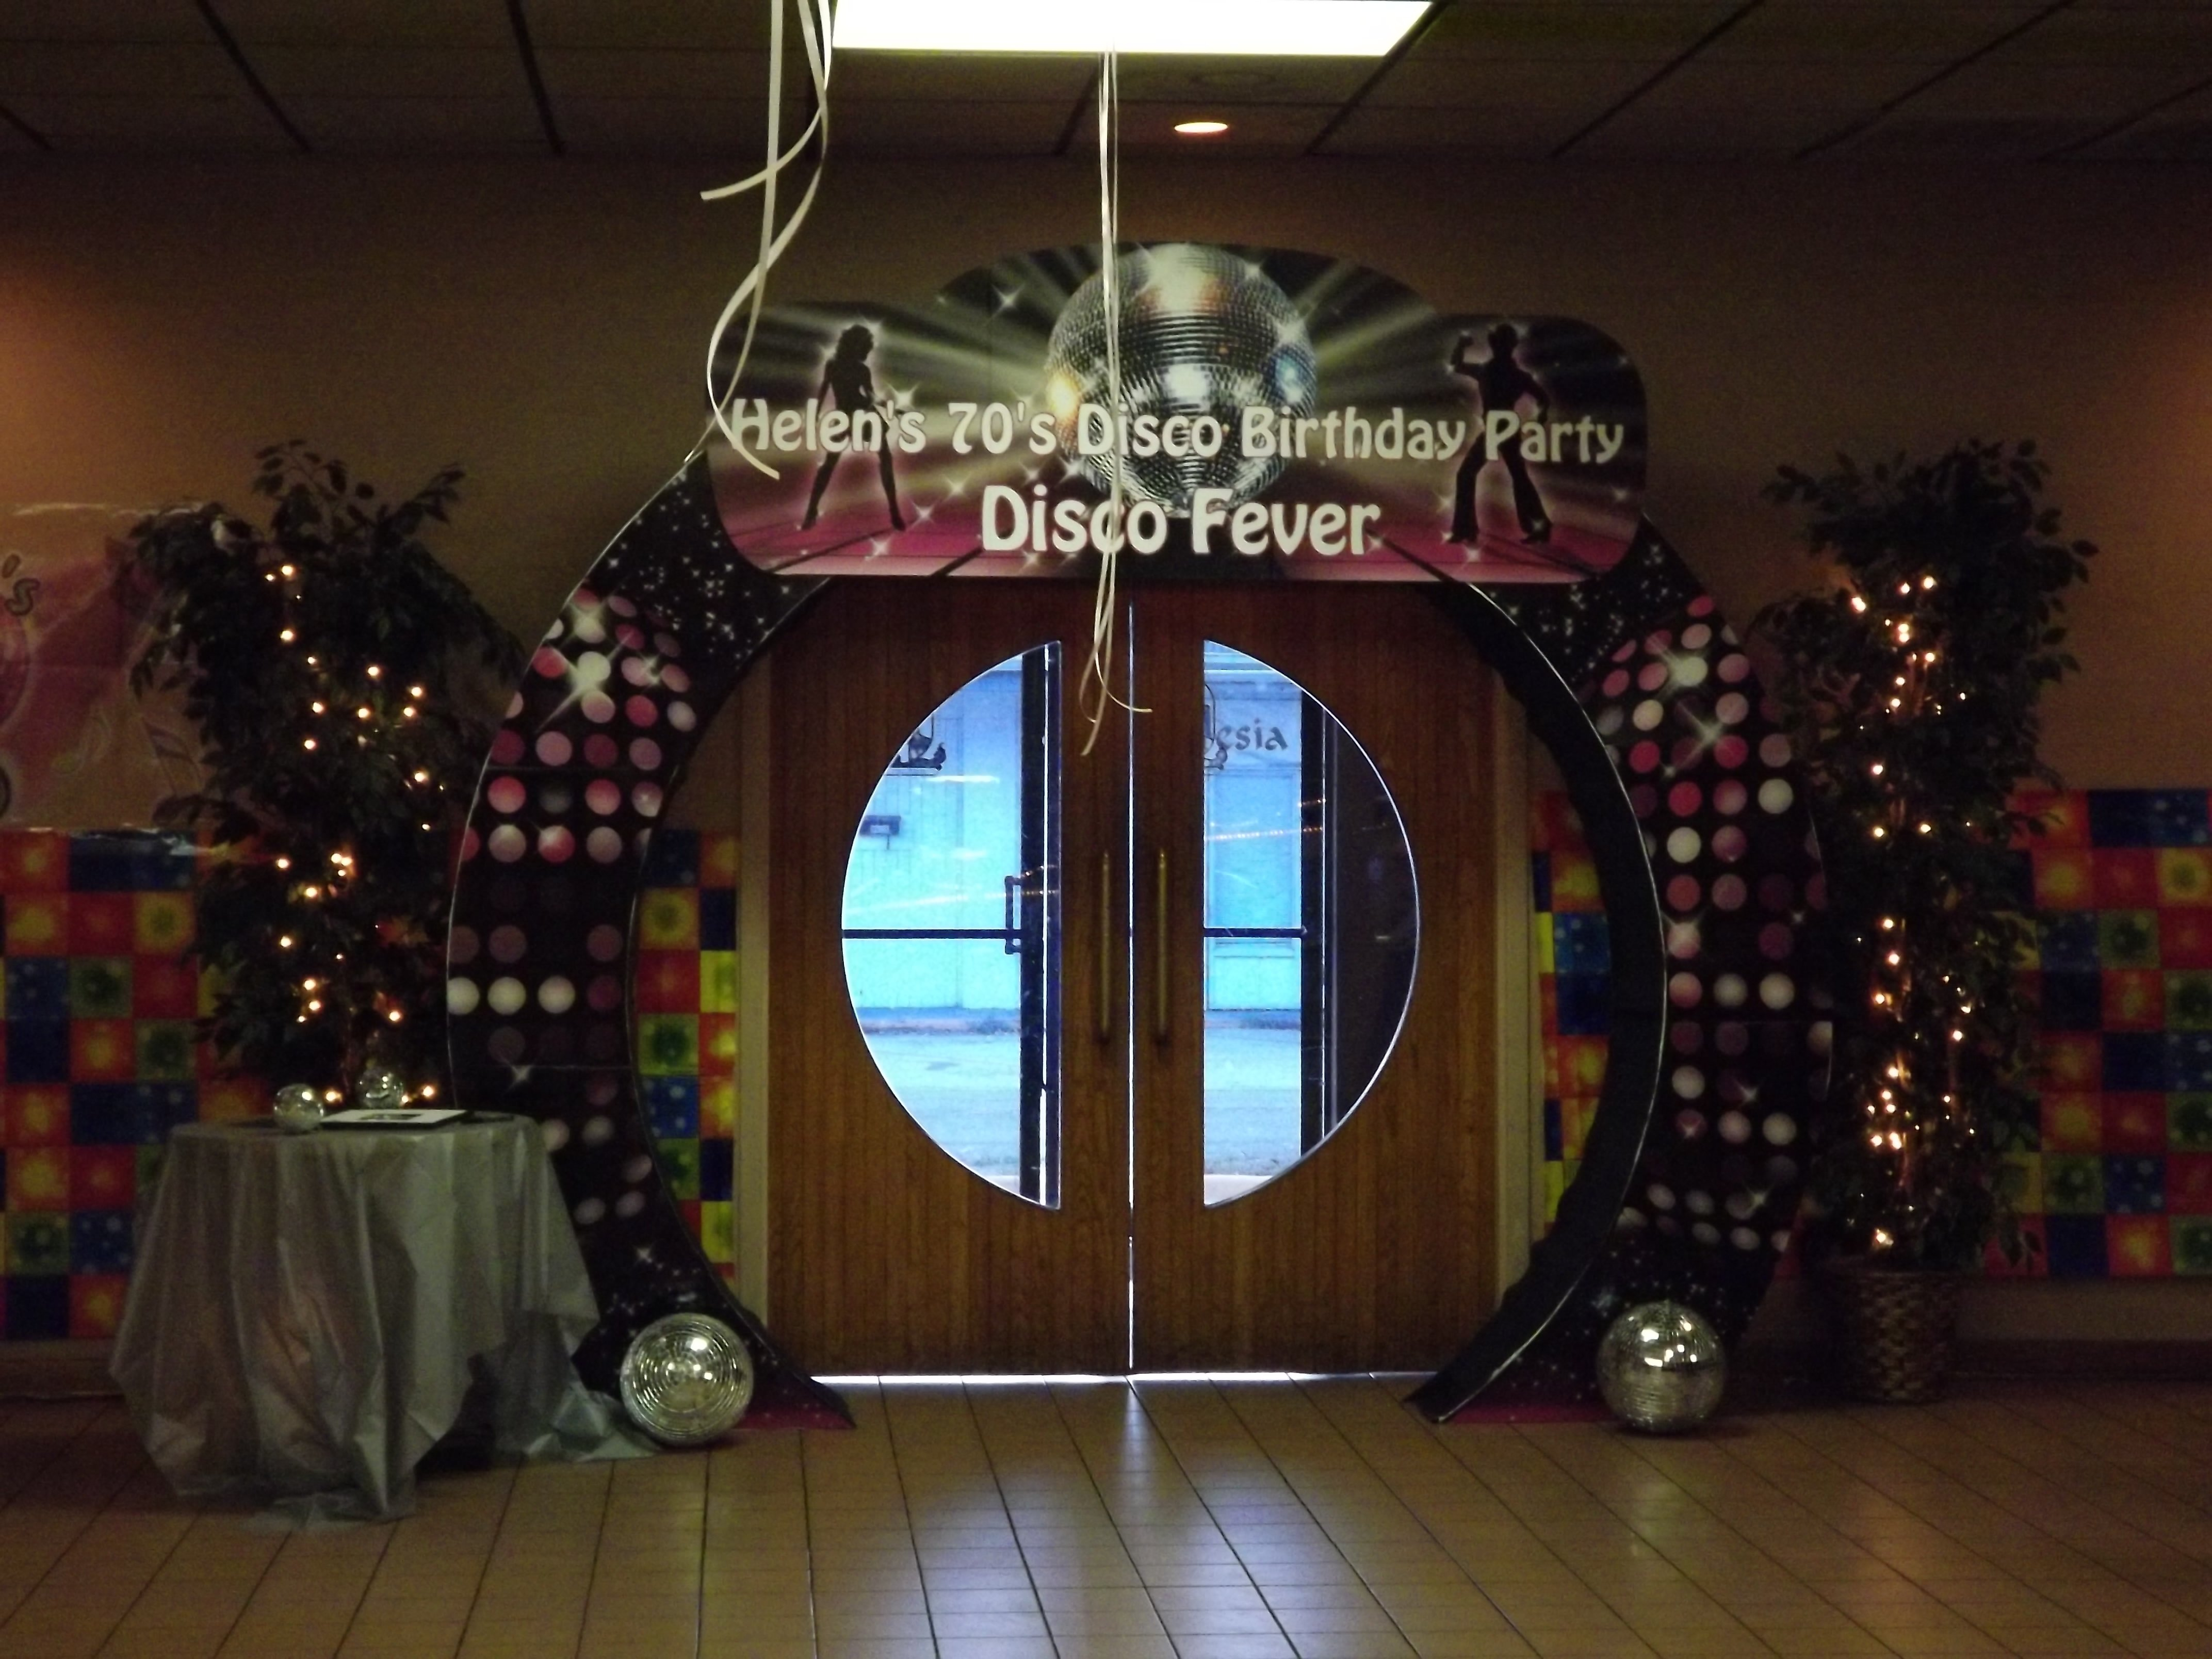 10 Perfect Disco Party Ideas For Adults 70s disco birthday party decorations tangible momentstt event